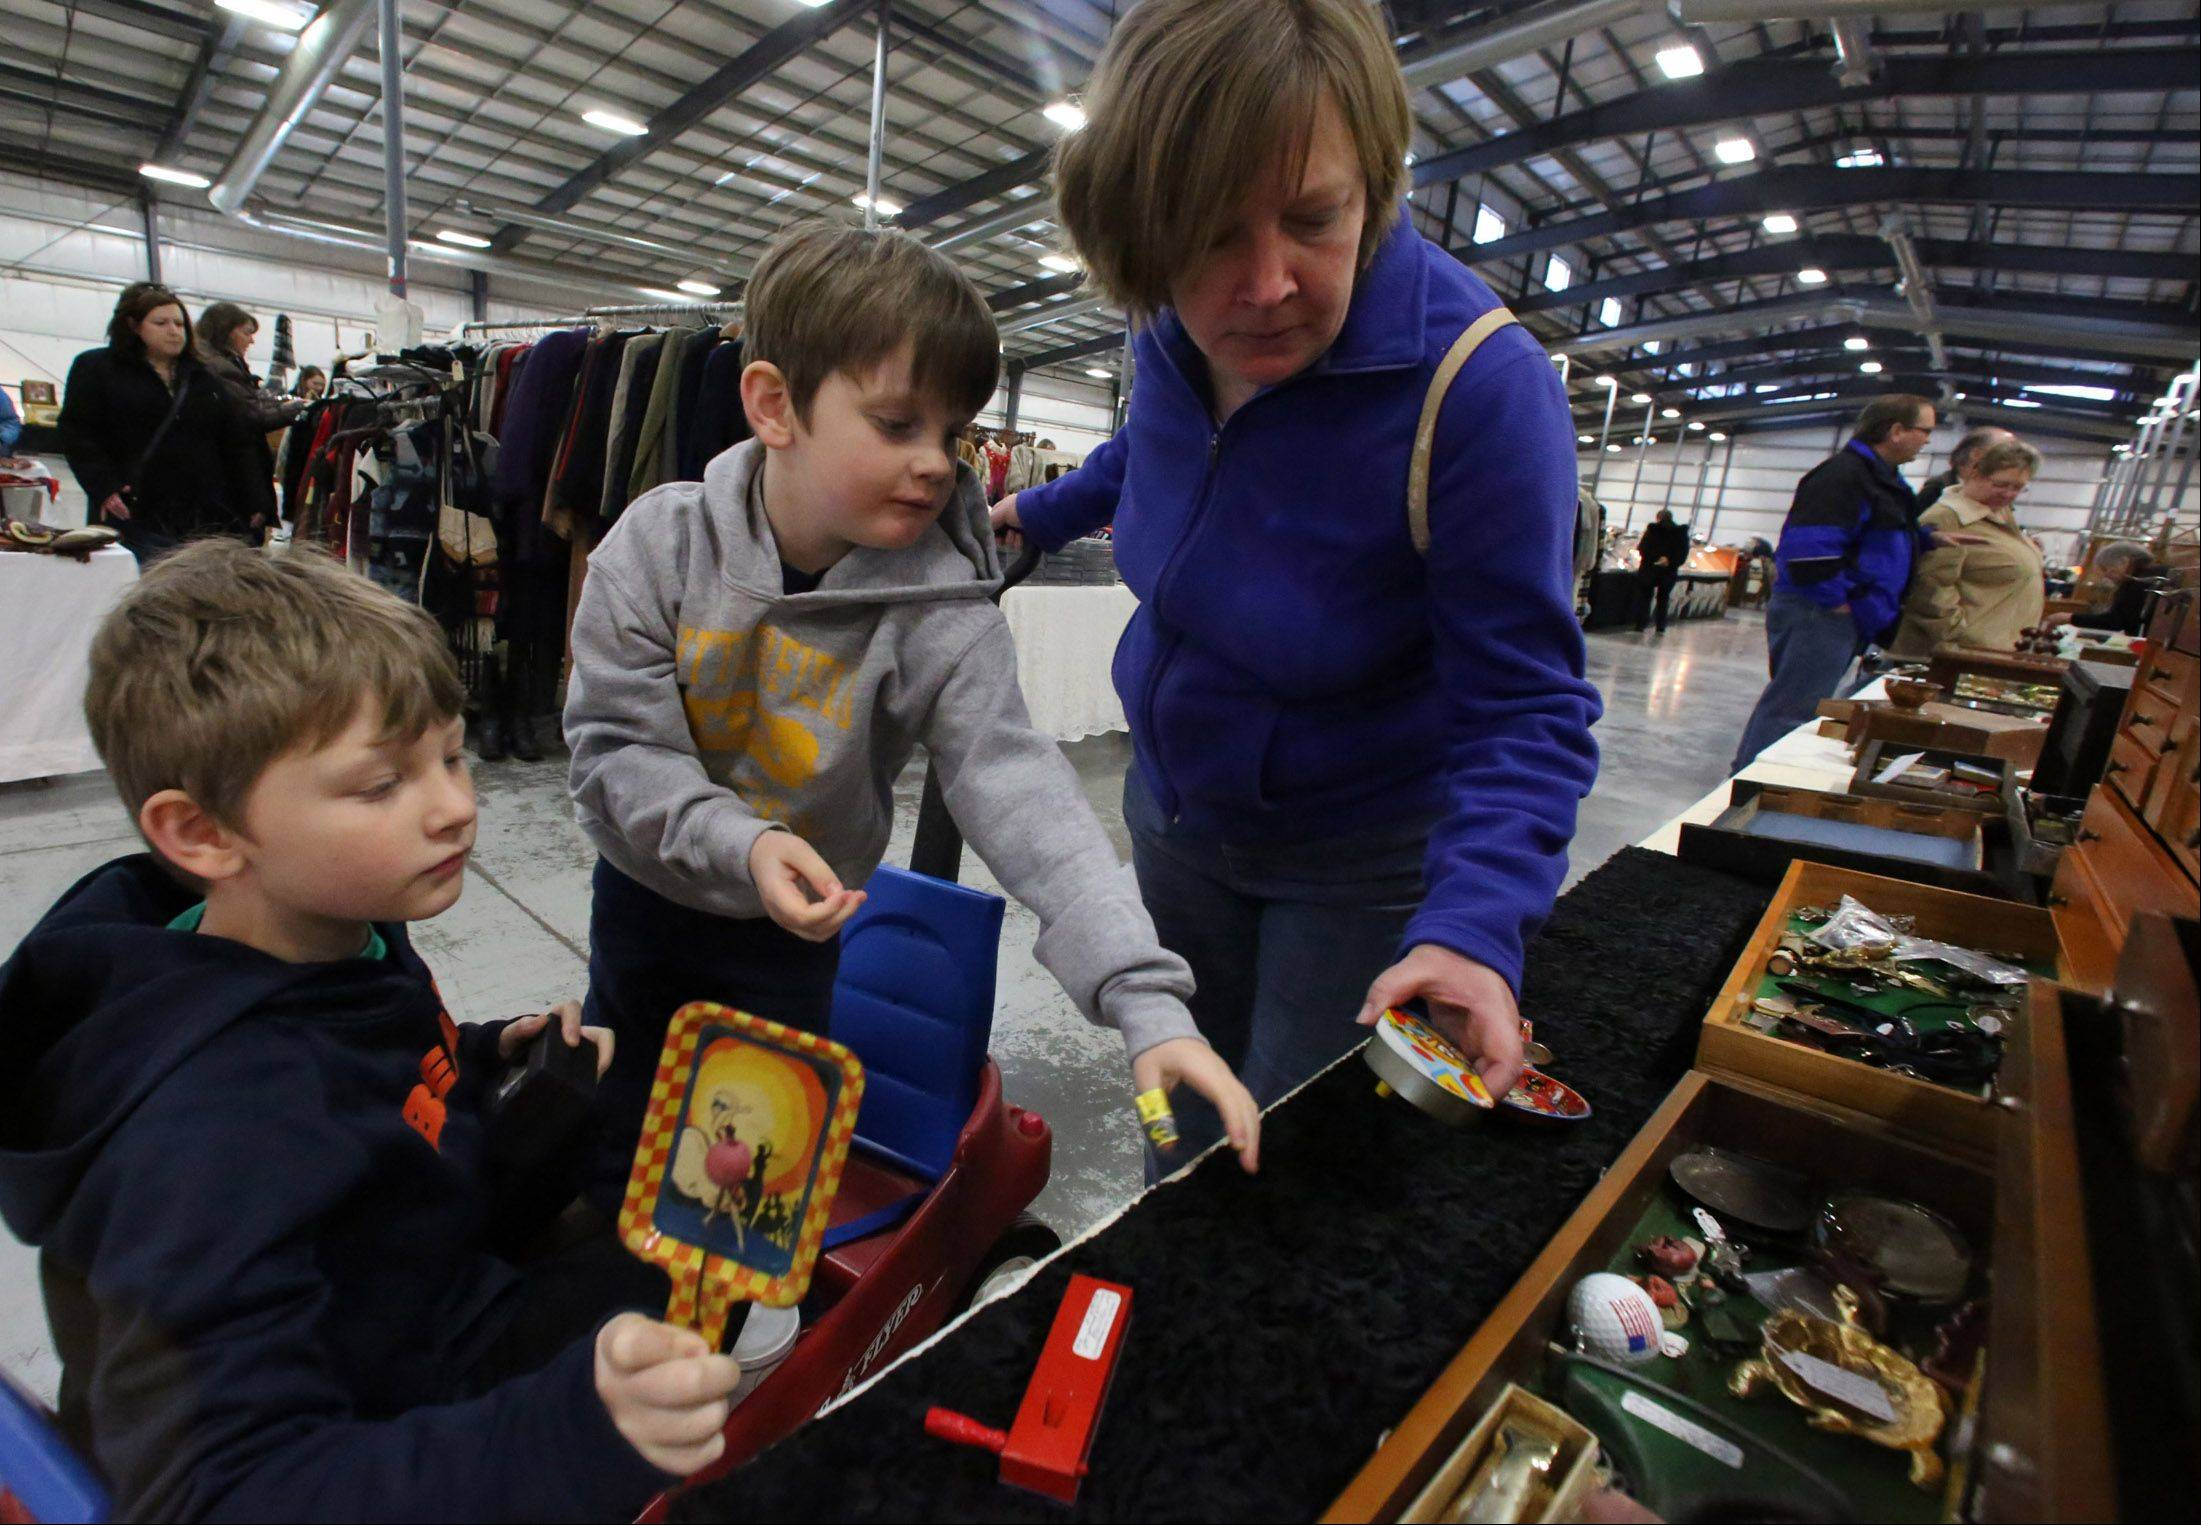 Julie Harding of Libertyville looks at old-fashioned noise makers with her sons Alexander, 7, left, and Nathaniel, 6, at Zurko Antiques and Flea Market on Saturday at Lake County Fairgrounds in Grayslake.